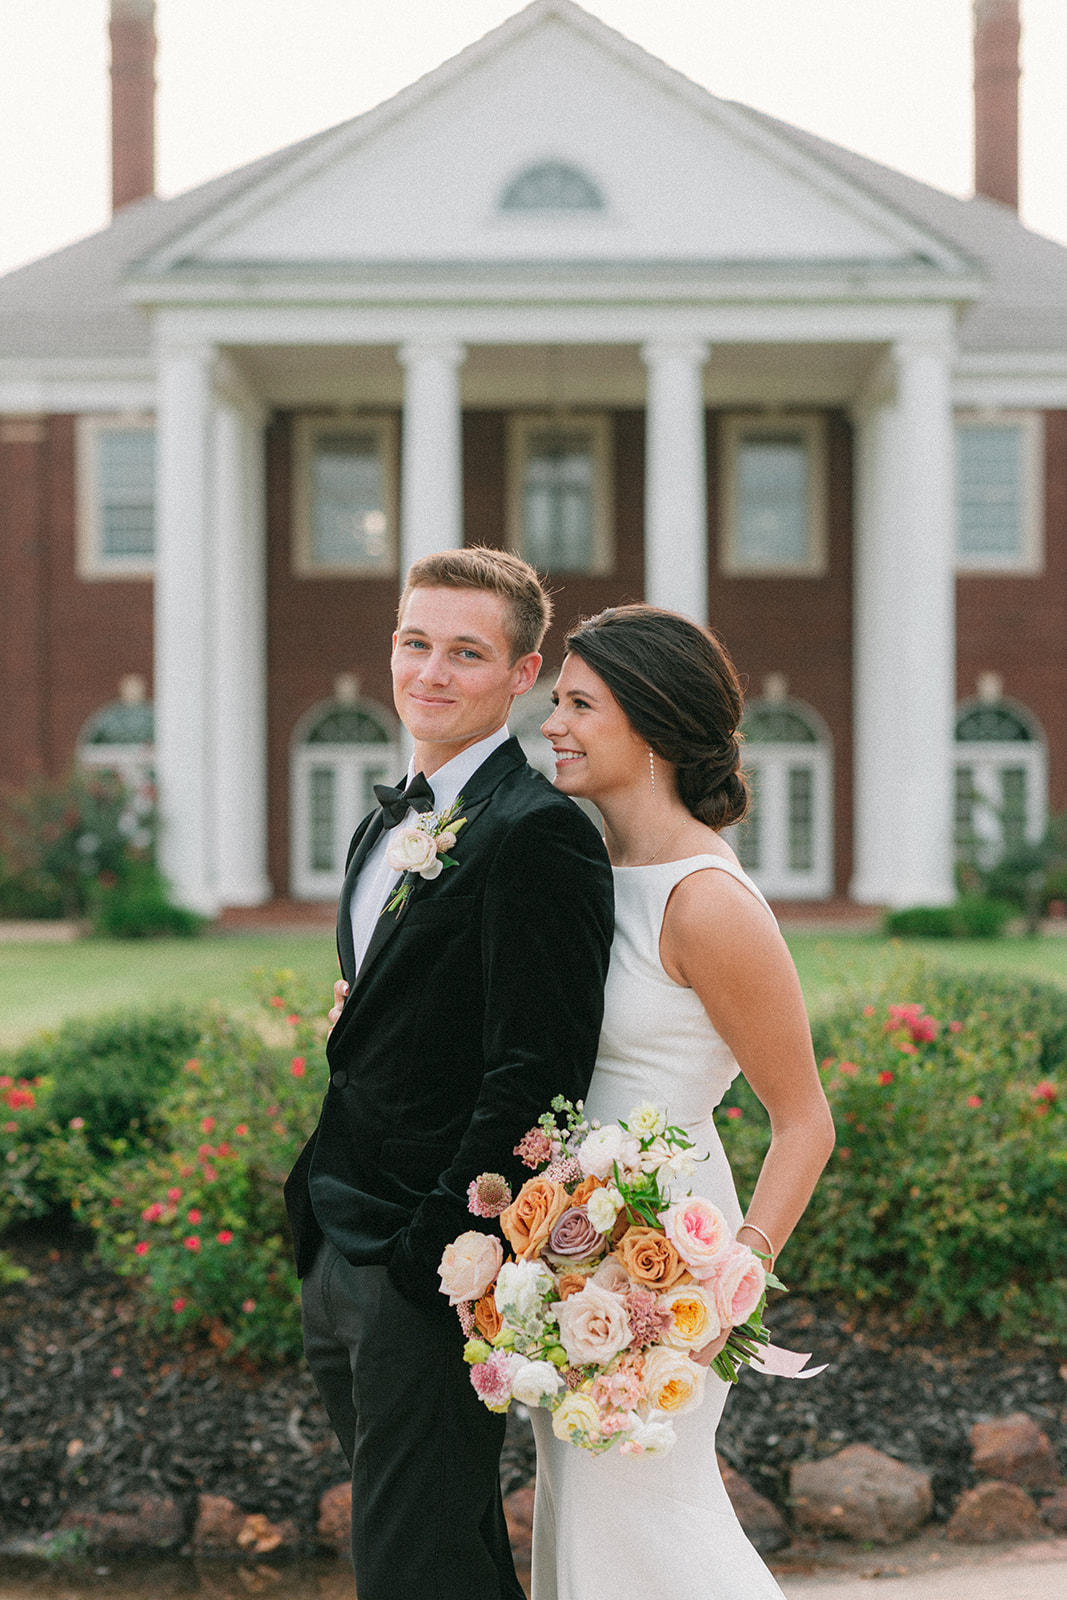 Bride smiles up at the groom while holding her artfully designed bridal bouquet. The couple is standing in front of the Mansion at ColoVista.